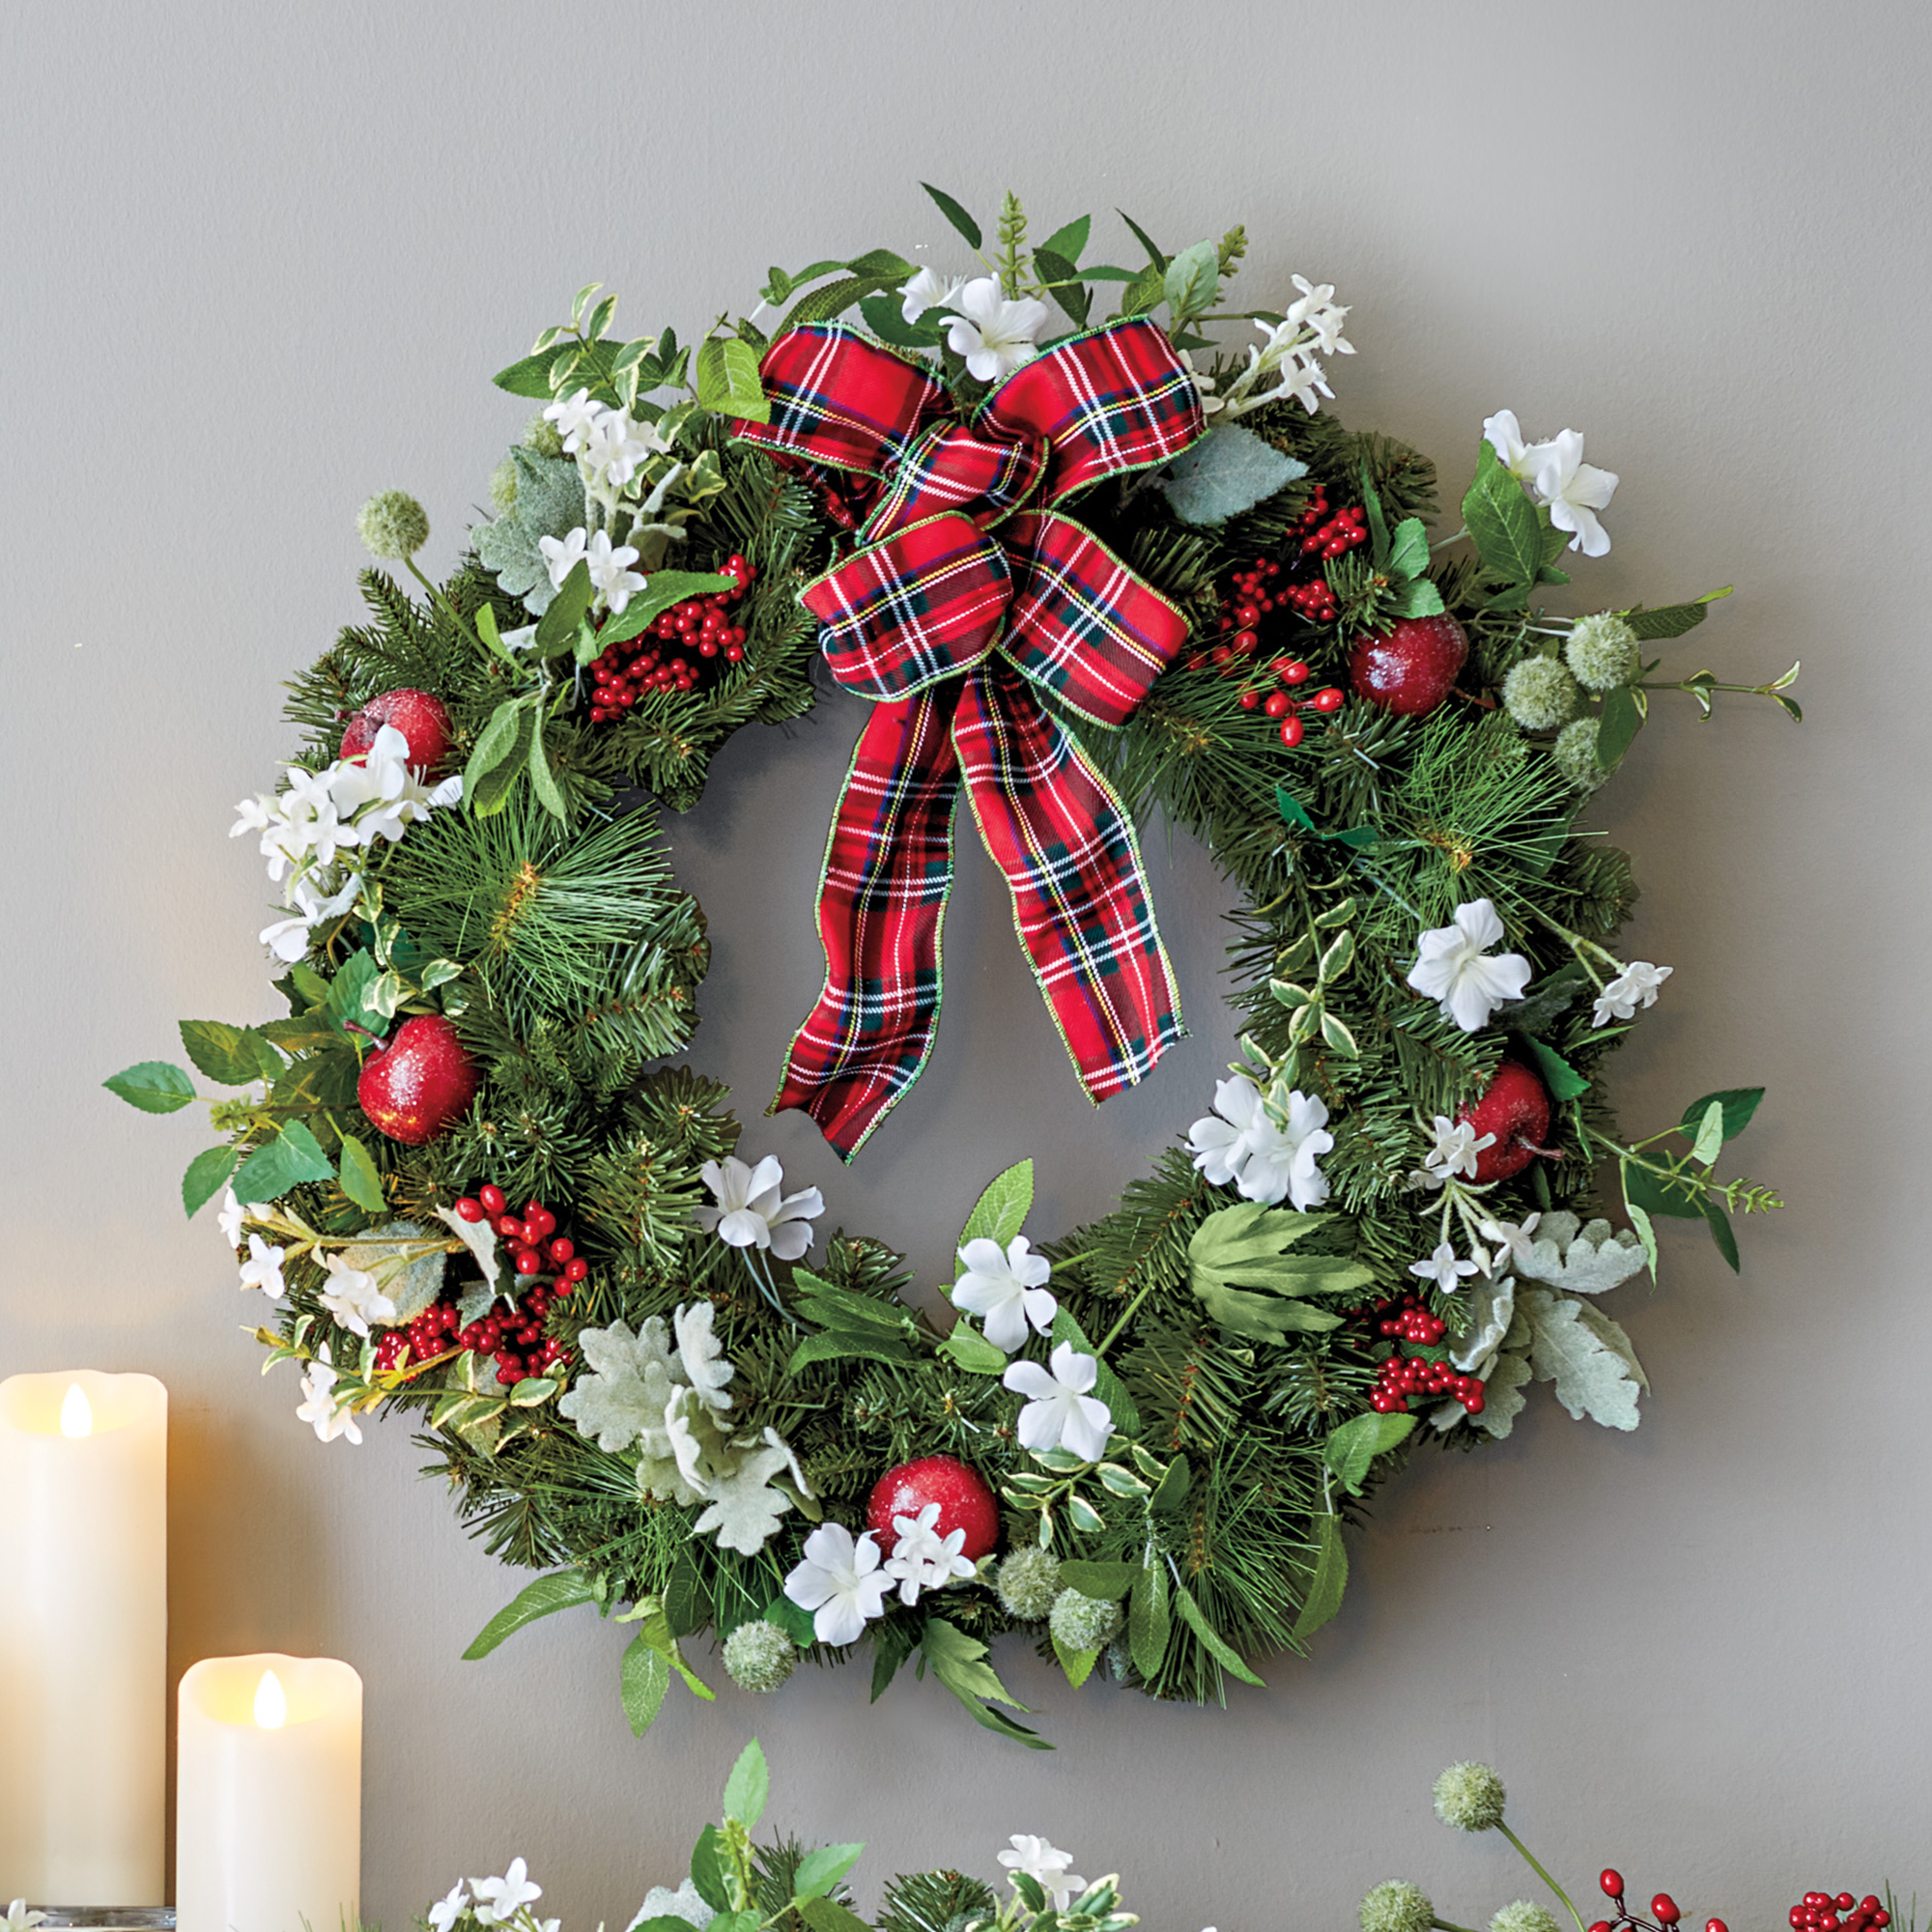 Paperwhite & Berry Wreath